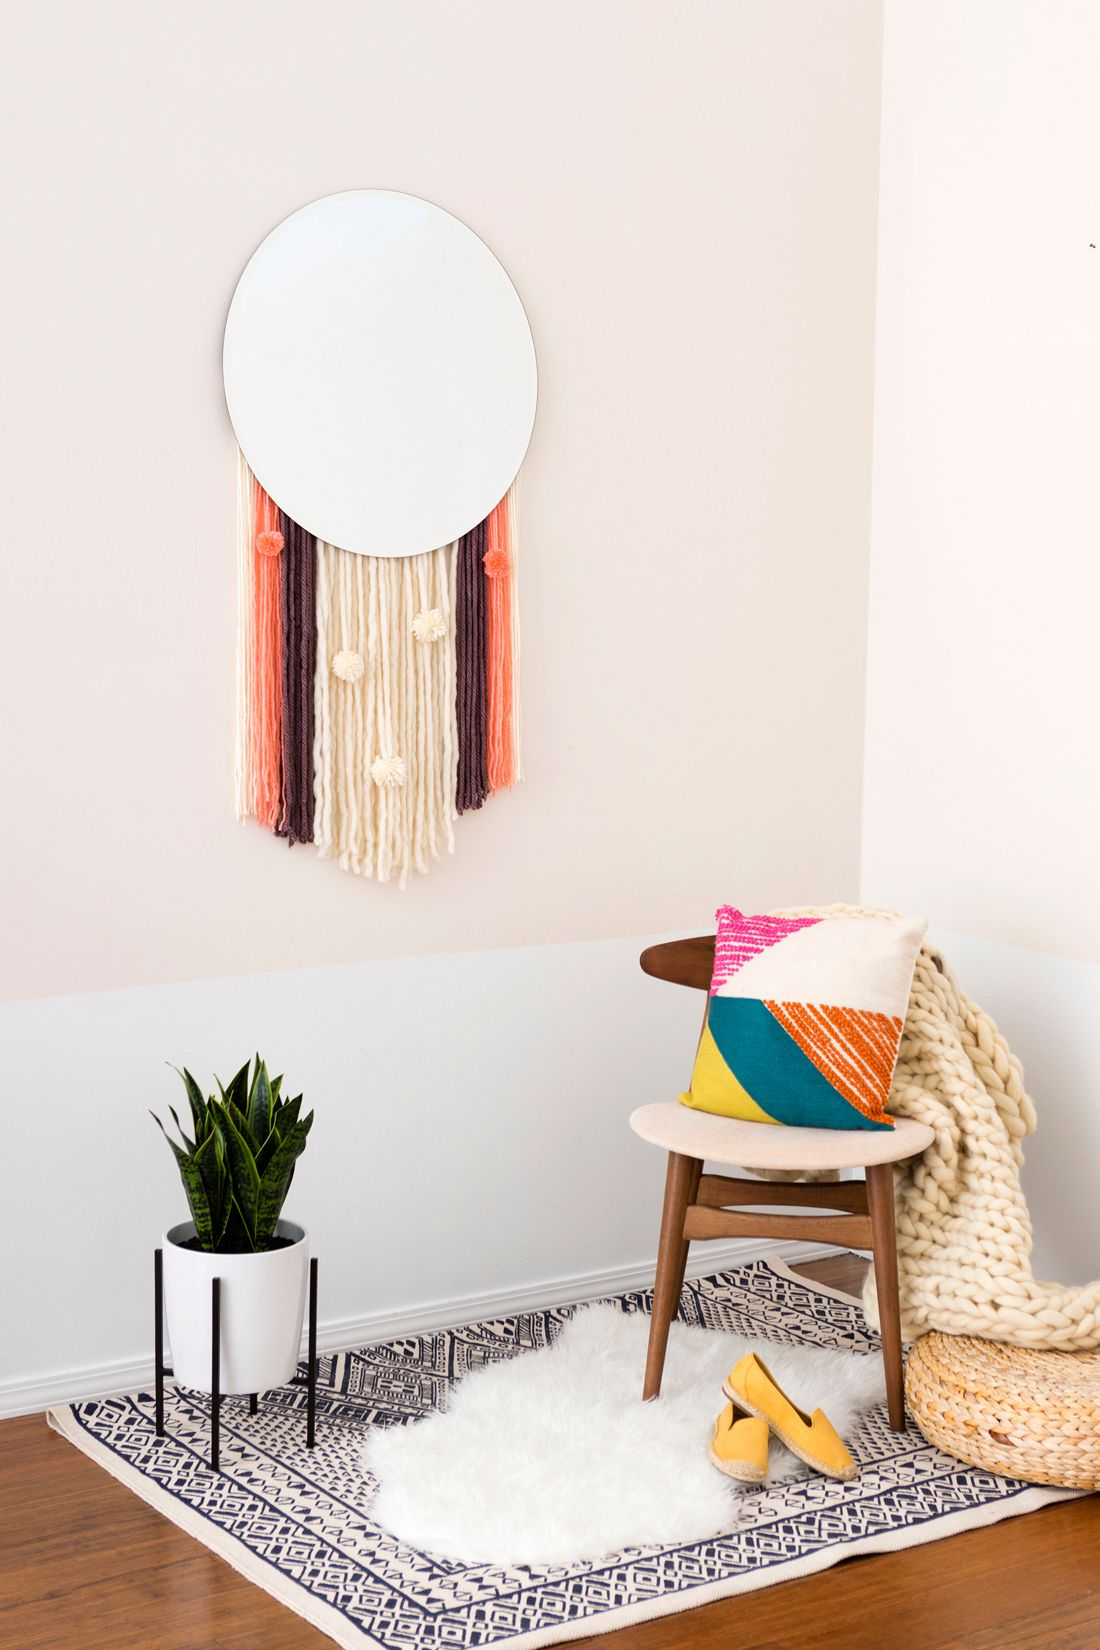 Boho Lovers, This DIY Statement Wall Hanging Mirror Is for